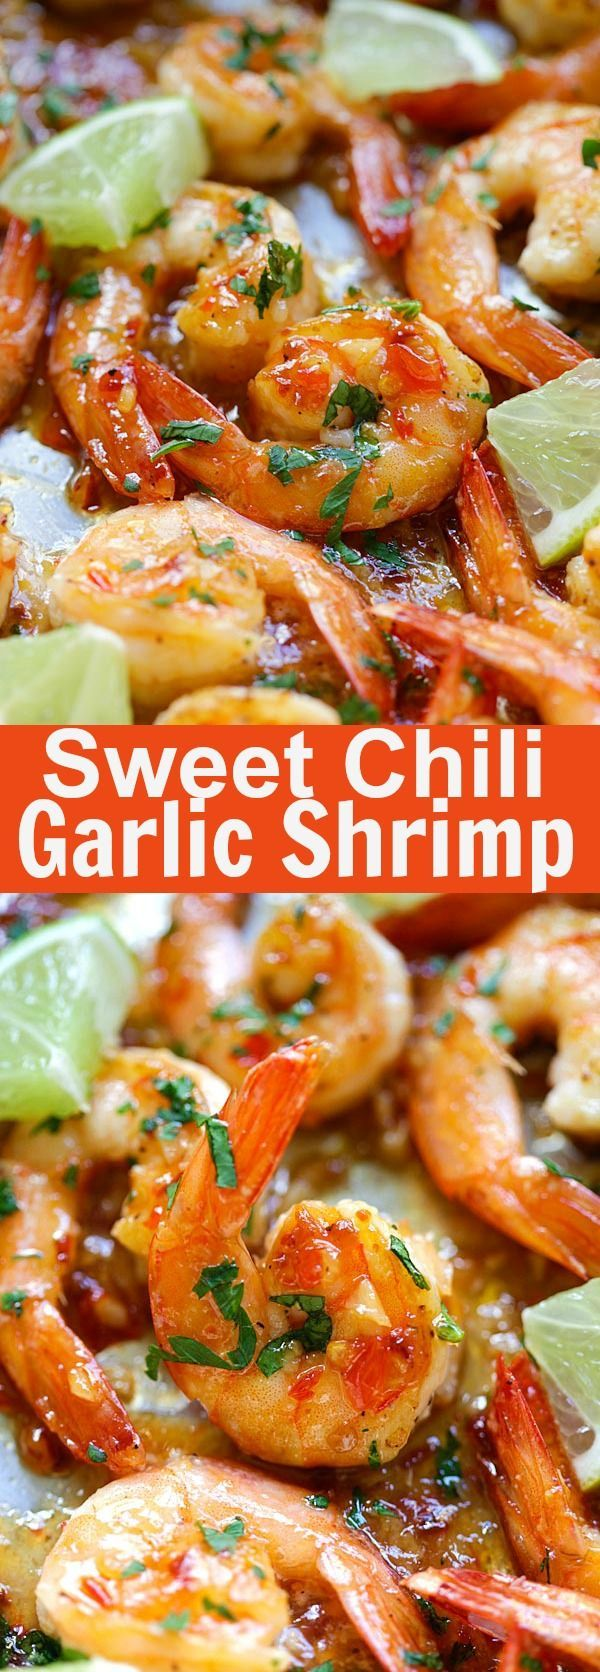 Sweet Chili Garlic Shrimp – easiest and most delicious shrimp you can make in 15 mins with garlic and Thai sweet chili sauce. SO good | rasamalaysia.com